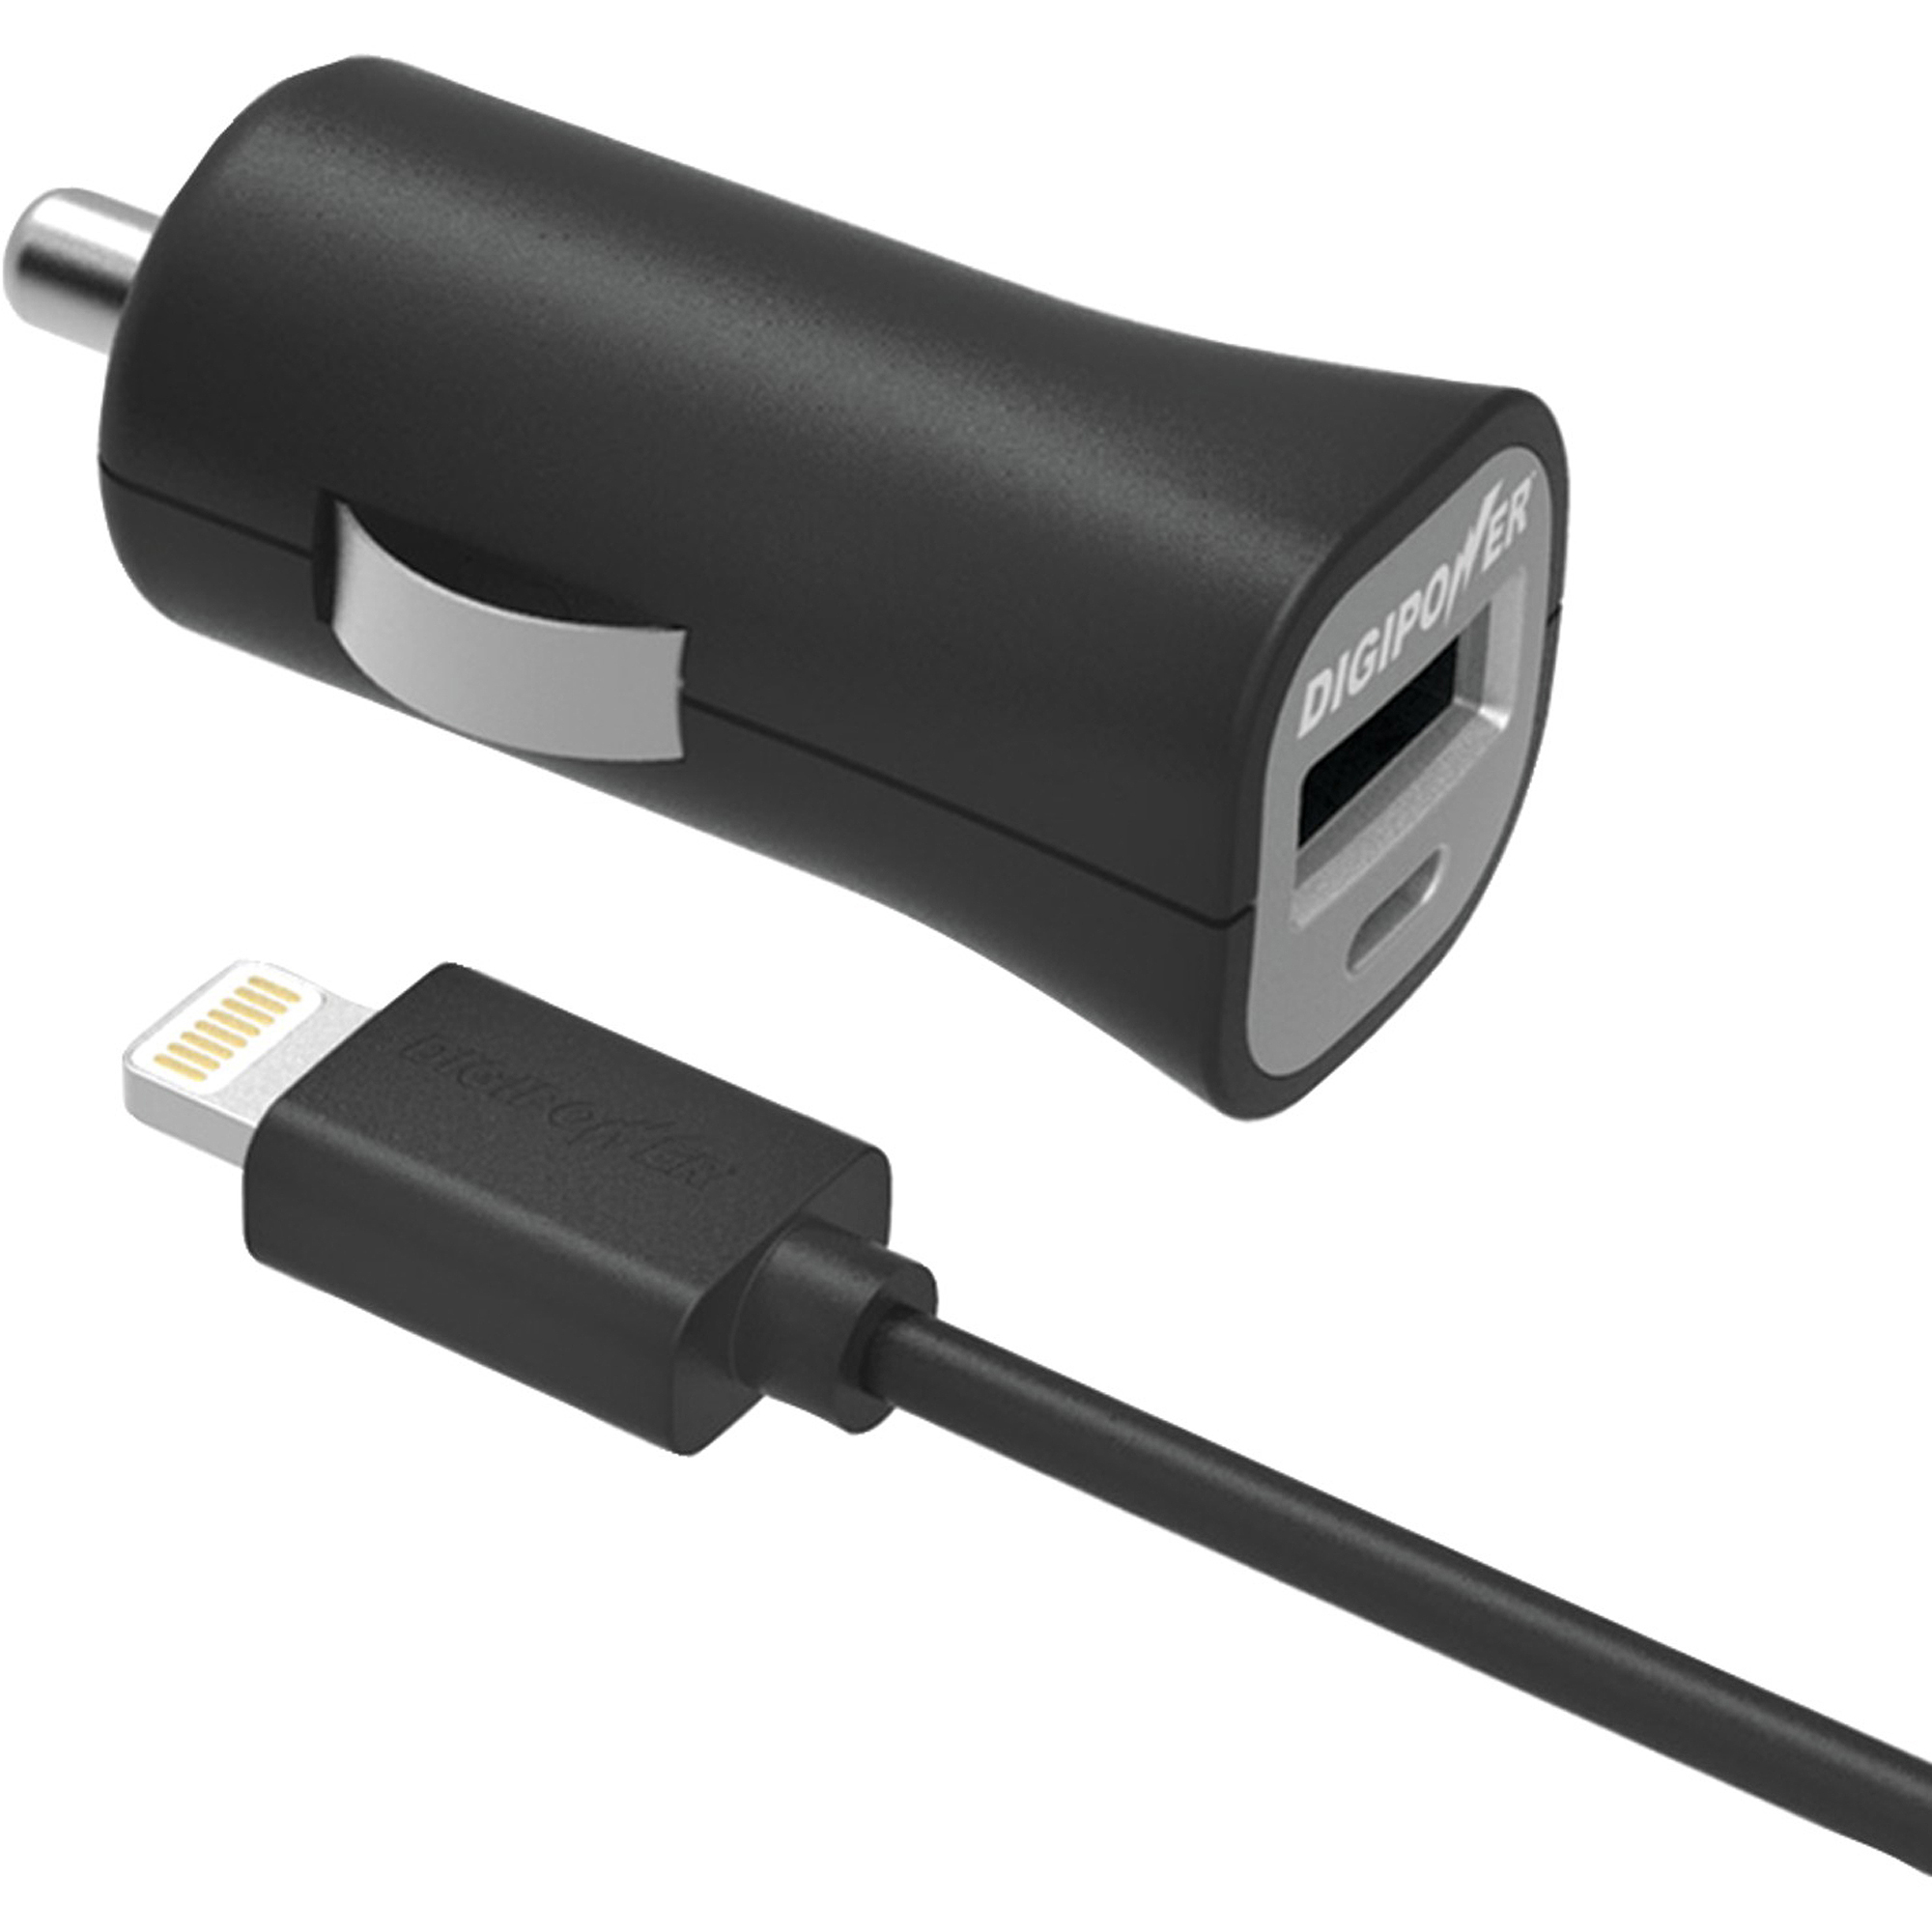 Digipower IS-PC2L InstaSense 2.4A Single USB Car Charger